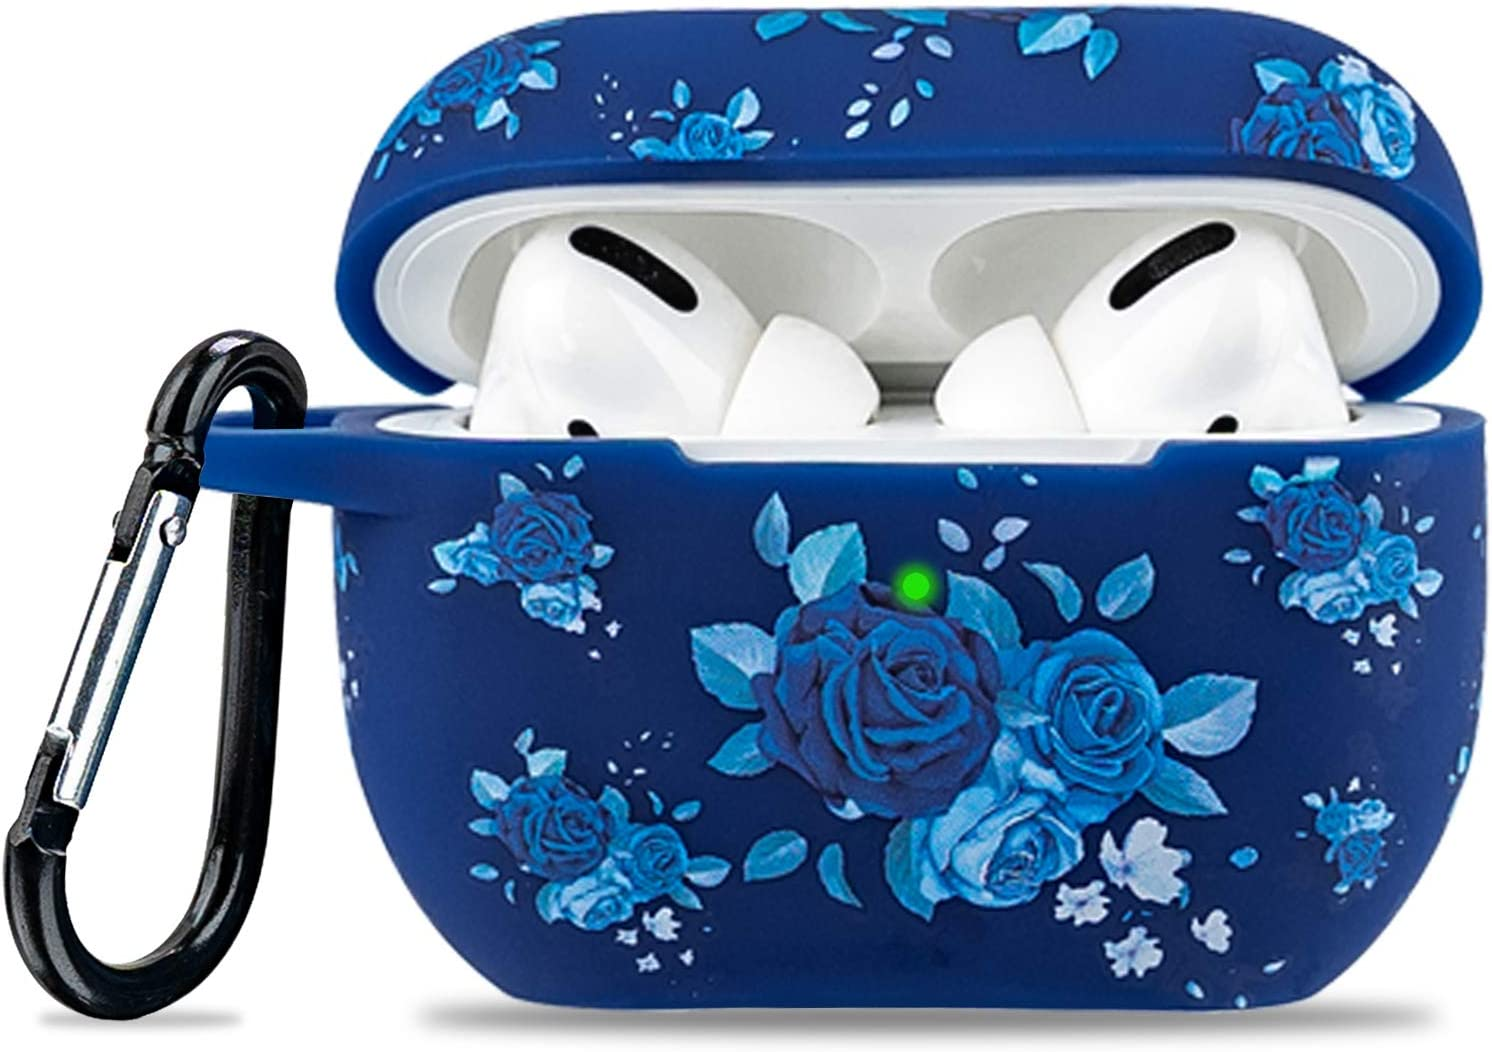 Airpod Pro Case Soft Silicone - LitoDream Flower Case Cover Flexible Skin for Apple AirPods Pro Charging Case Cute Women Girls Protective Skin with Keychain - Blue Rose